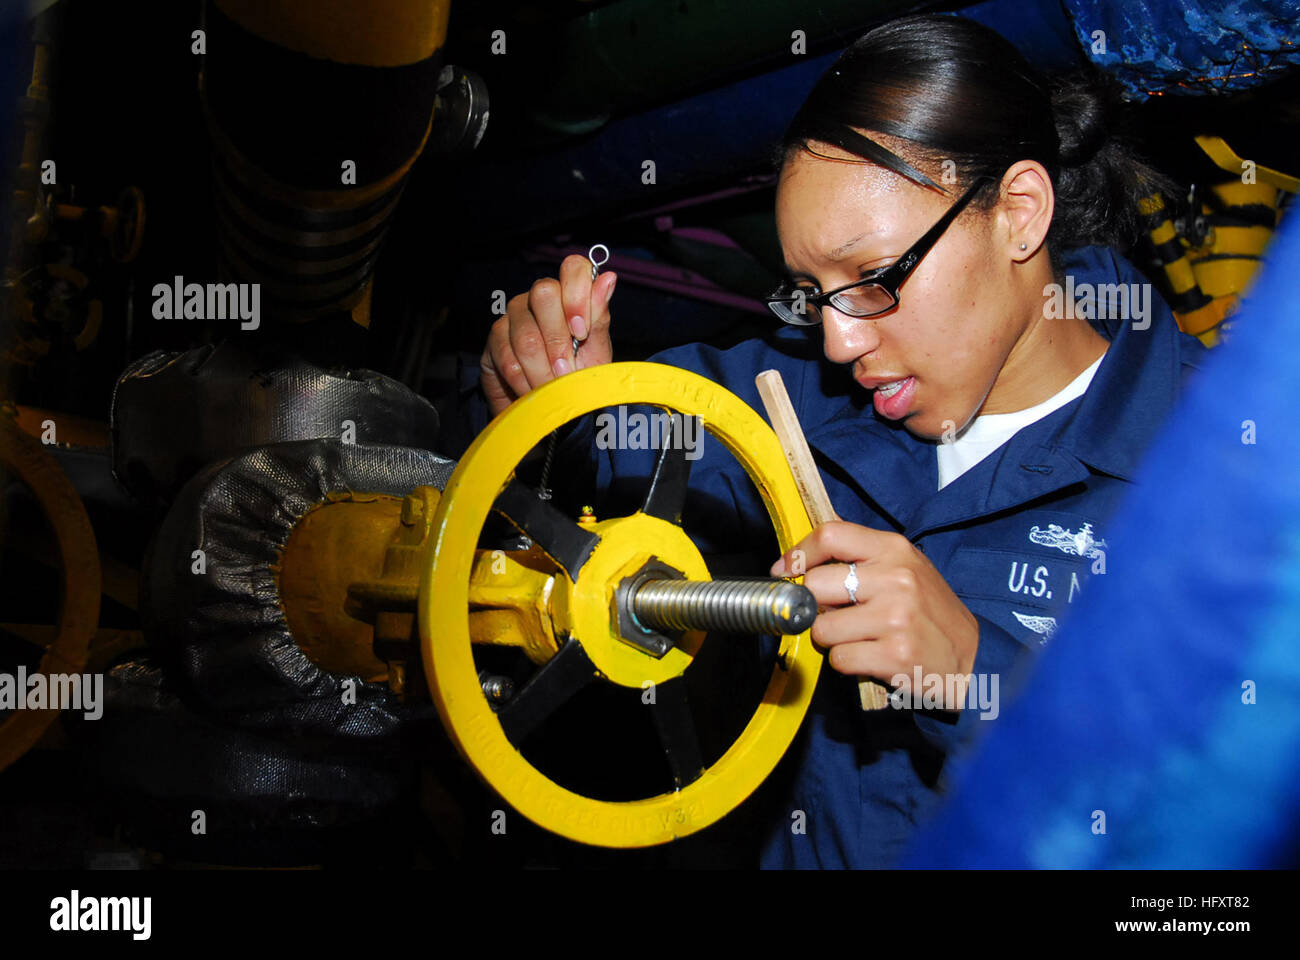 27 2009 machinist mate fireman candilyn elam does maintenance on a pressure valve in the forward diesel room aboard the aircraft carrier uss nimitz cvn